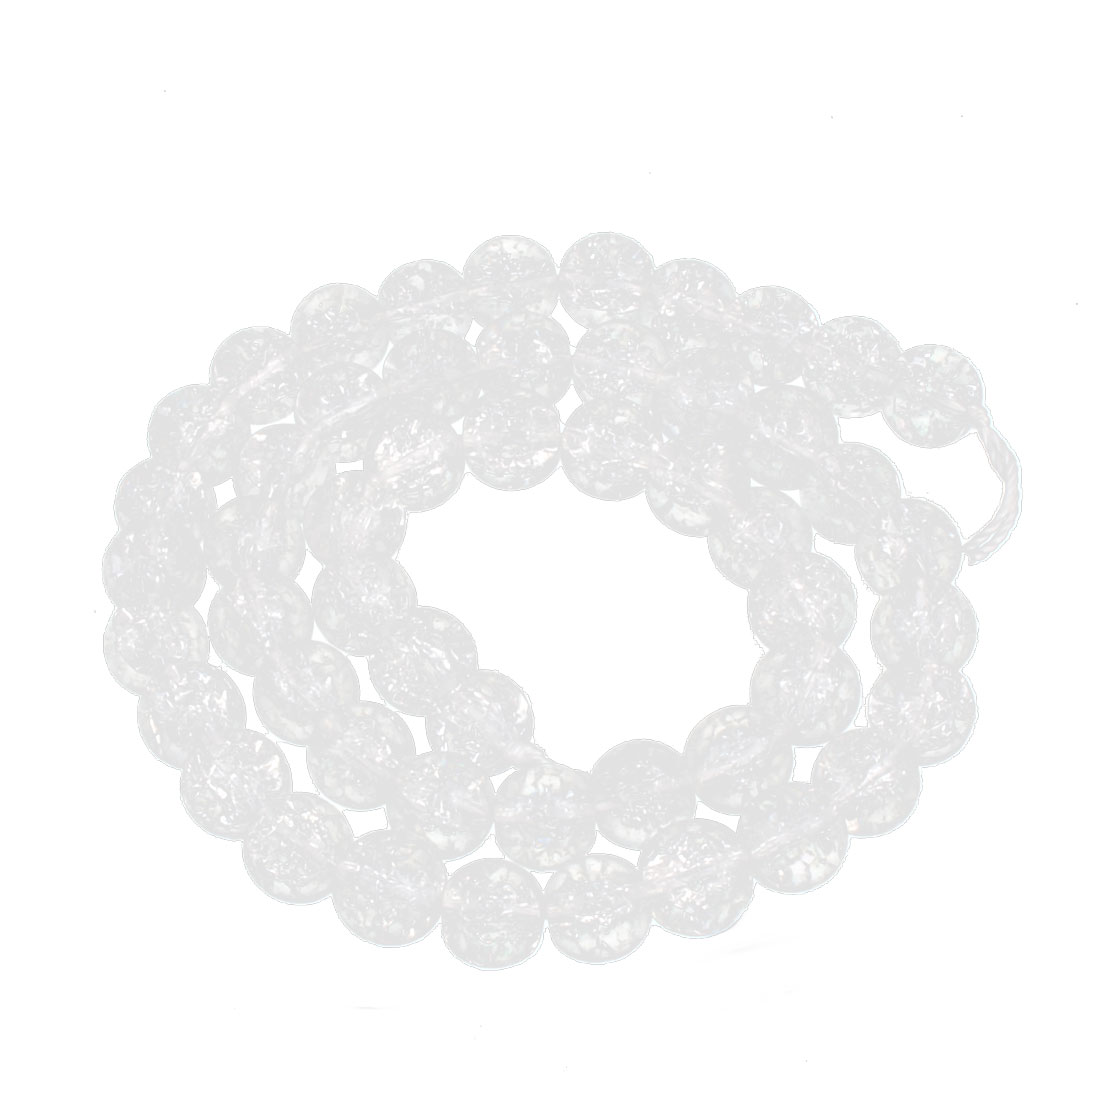 Lady Plastic Handmake Beads Necklace Jewelry Glitter White 8mm Dia